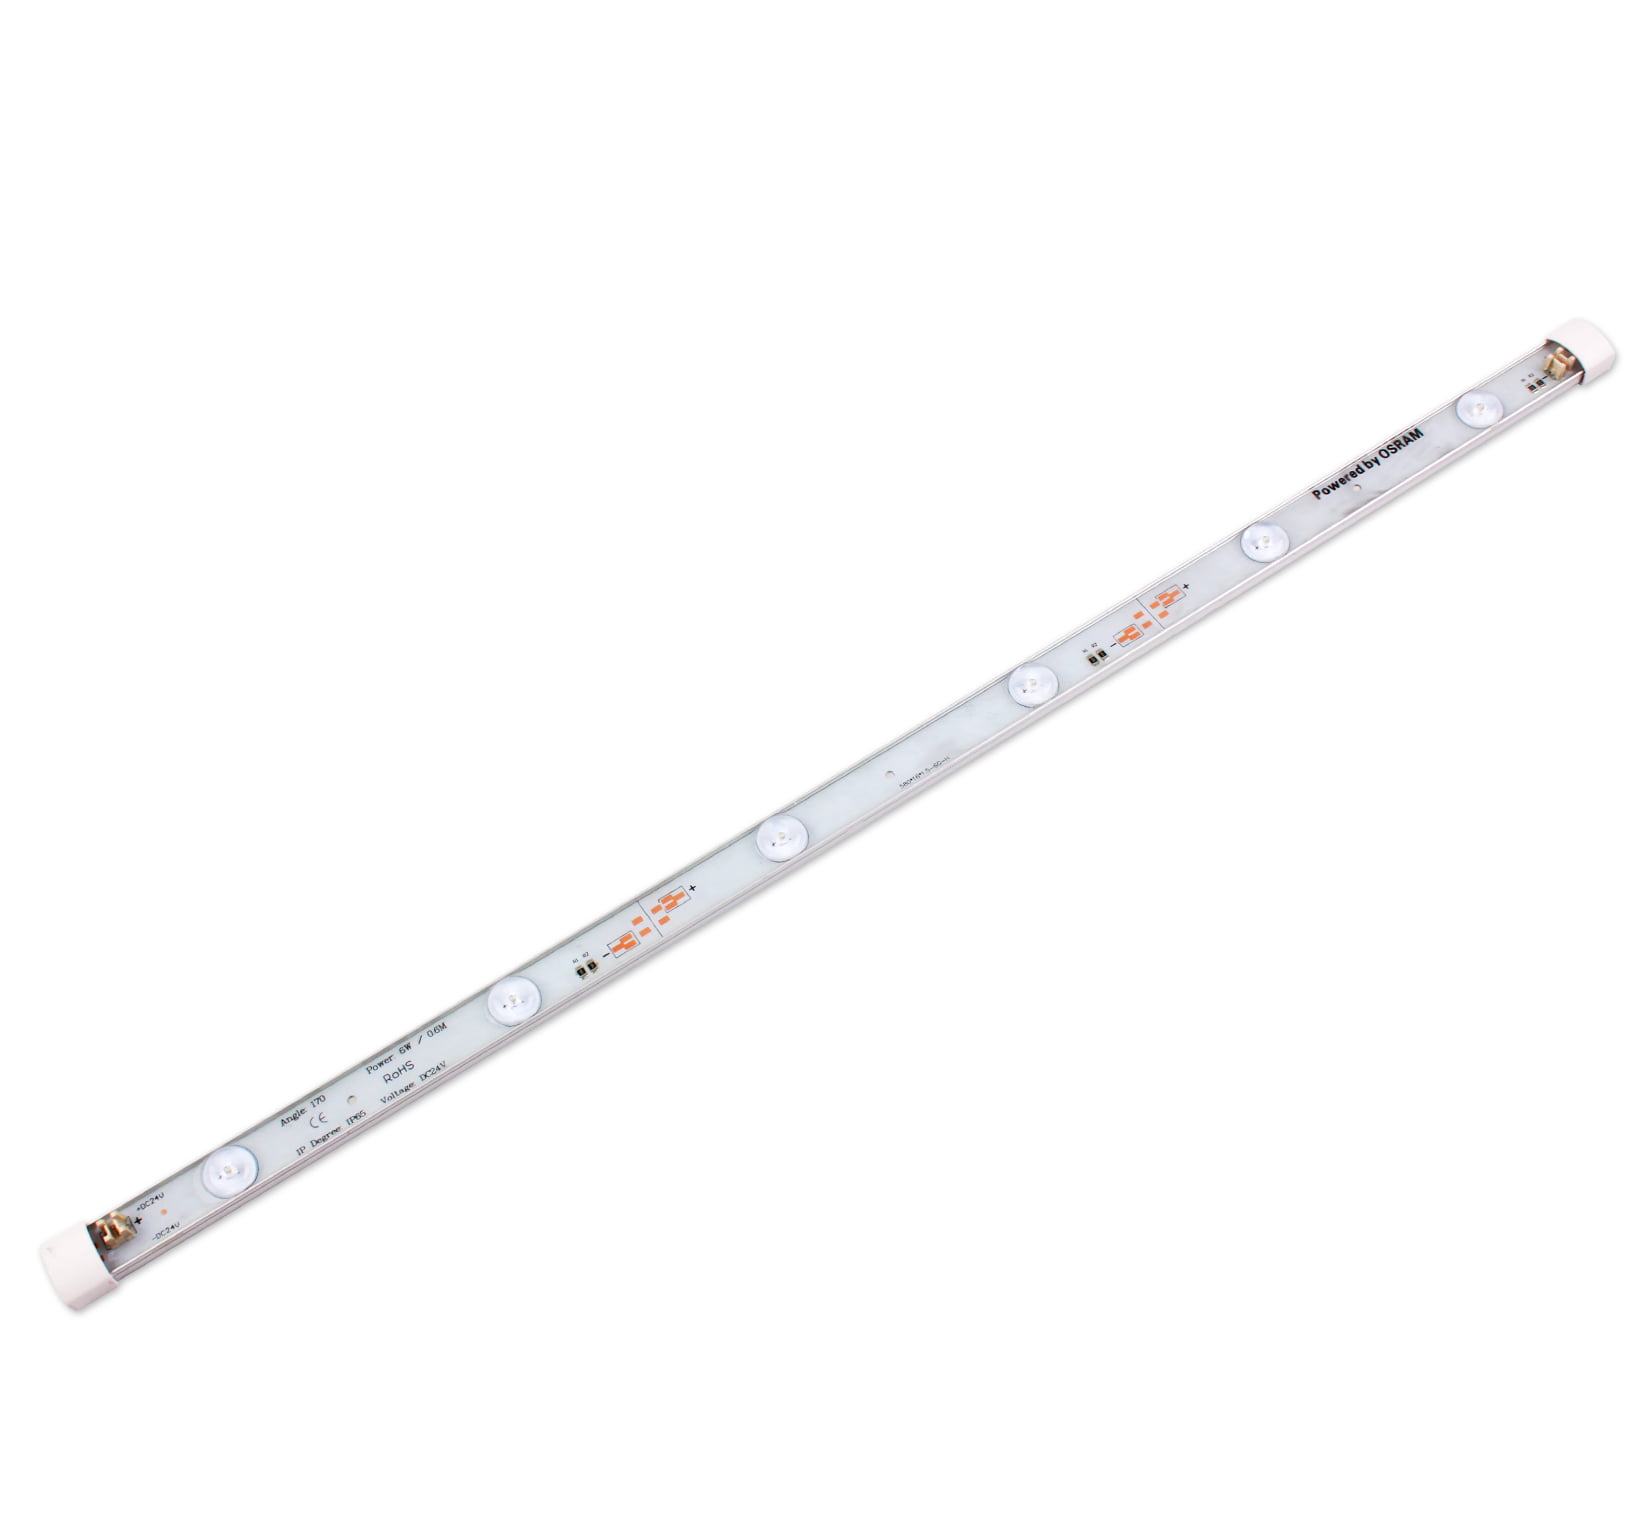 osram-ip-65-backlit-illuminated